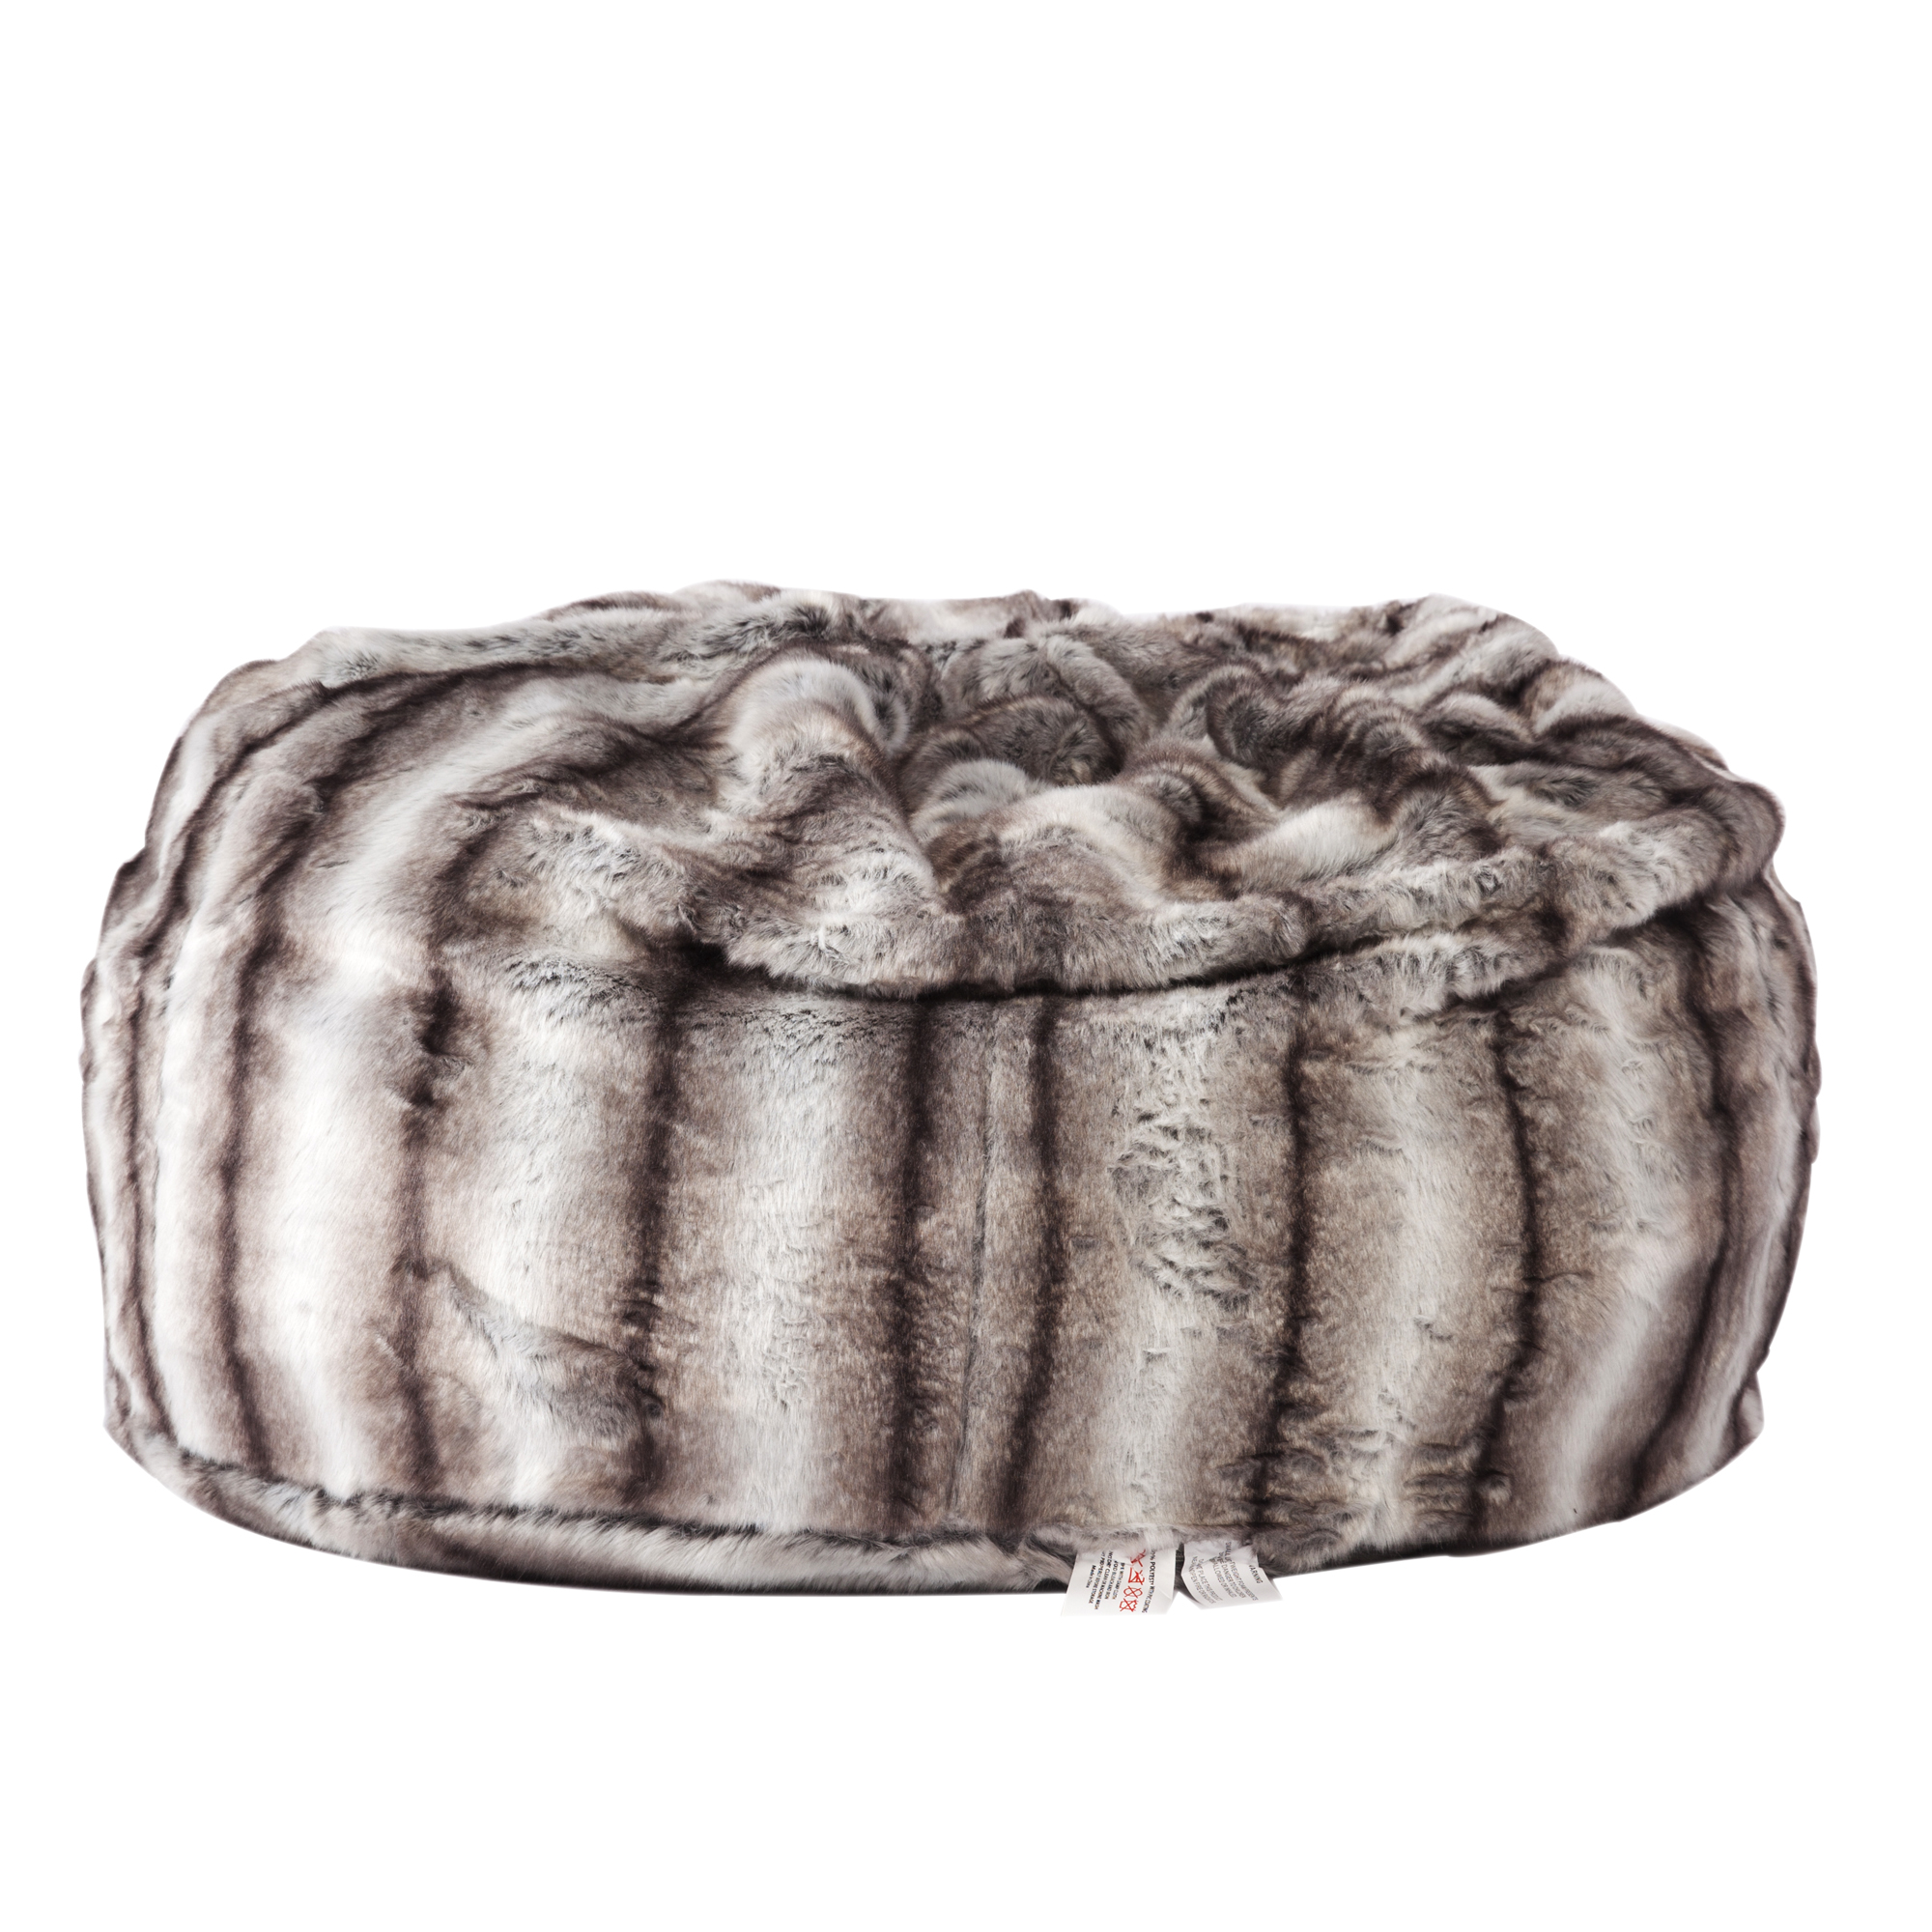 Incredible Us 106 99 Faux Fur Bean Bag Chair Luxury And Comfy Big Beanless Bag Chairs Plush Furry Chair Soft Sofa Lounger For Adults And Kids Sponge In Cushion Andrewgaddart Wooden Chair Designs For Living Room Andrewgaddartcom